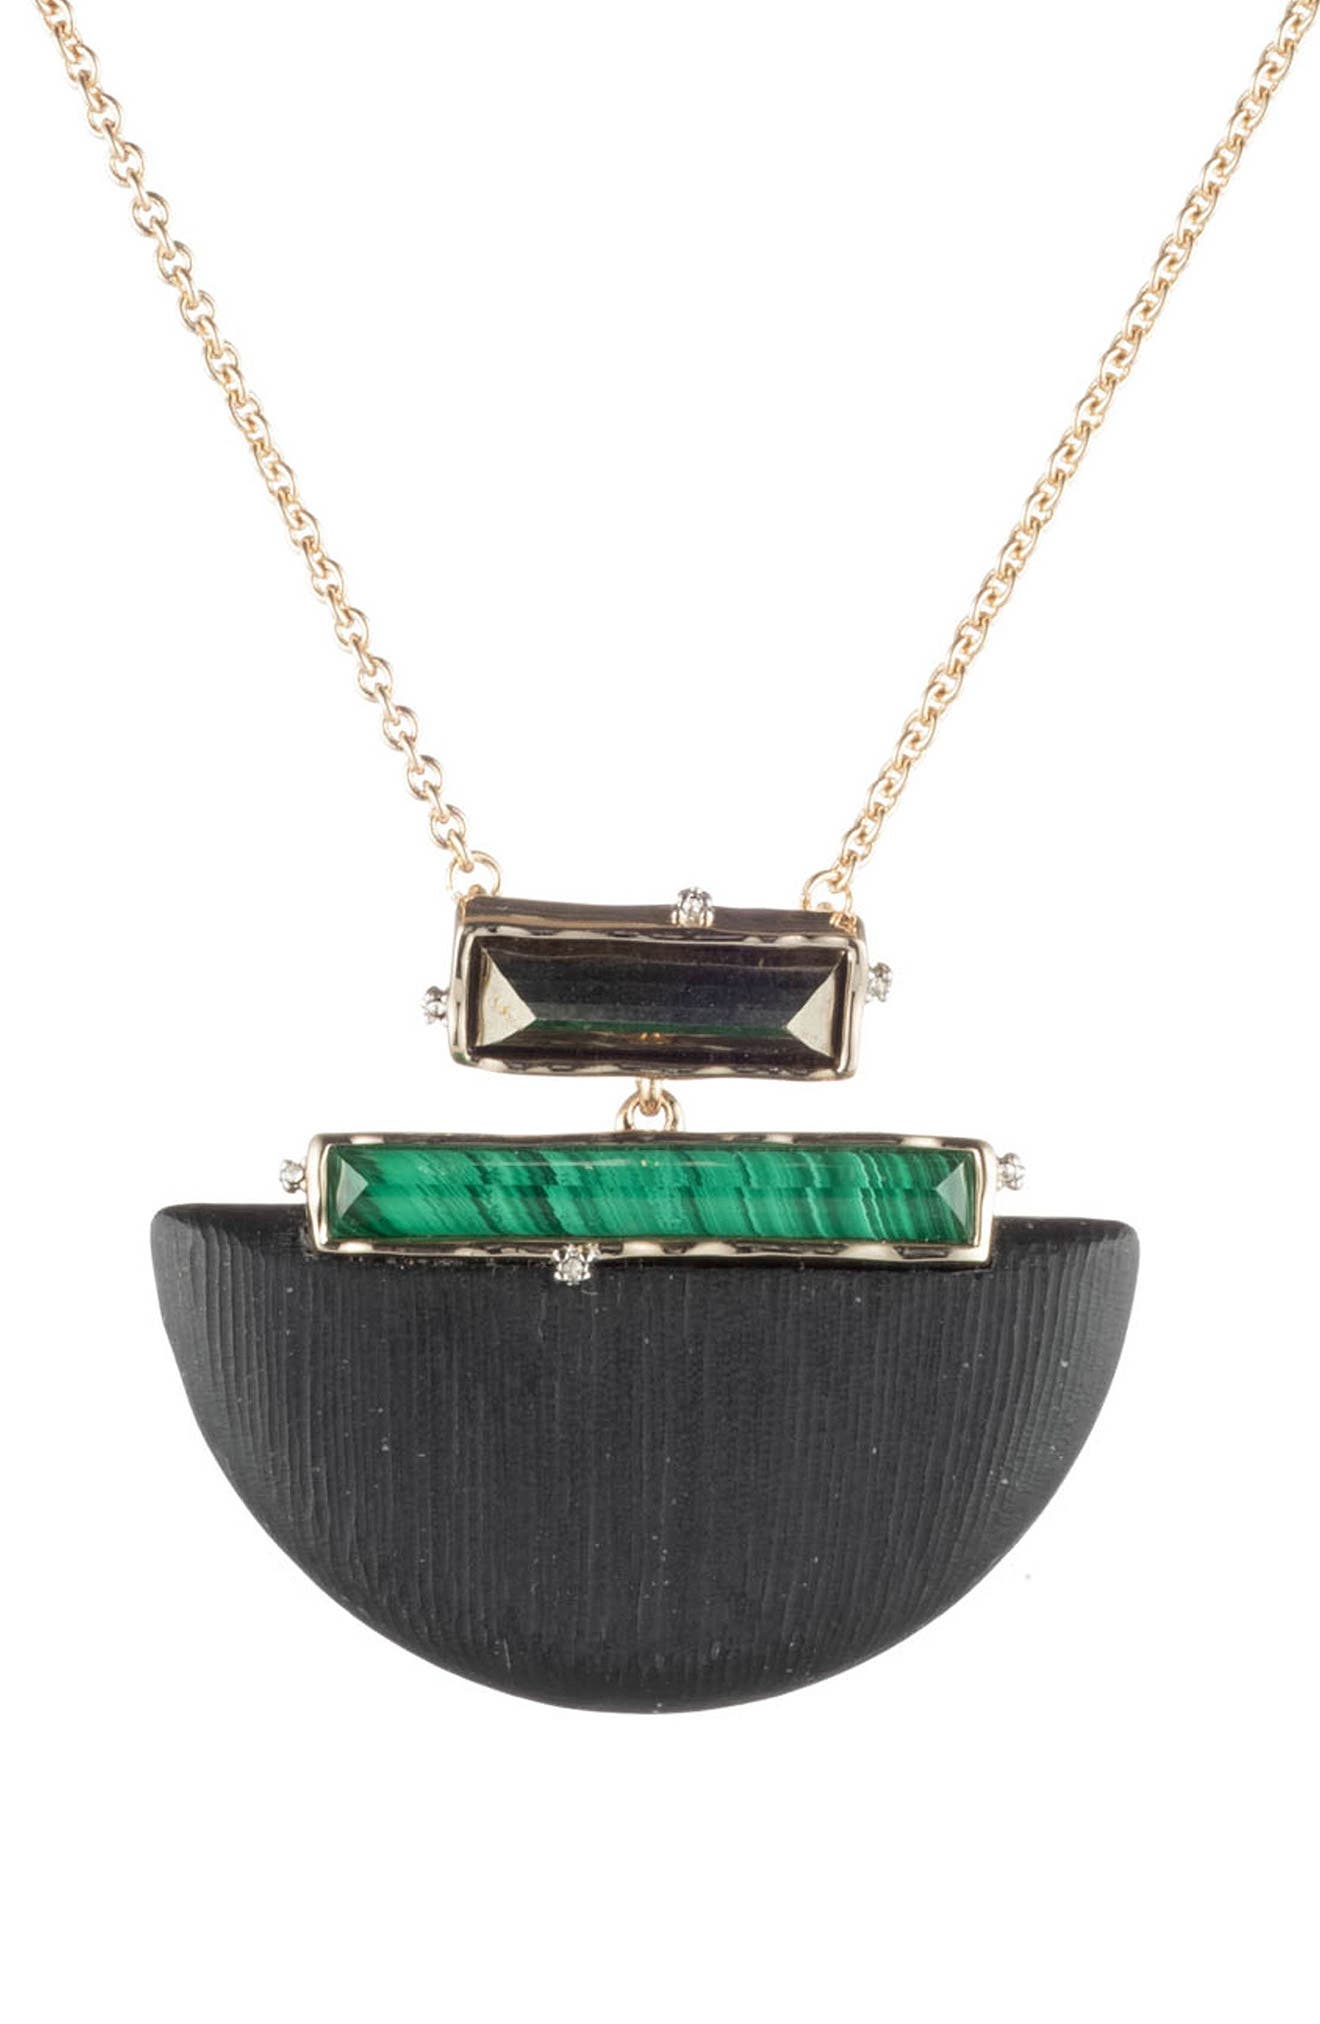 ALEXIS BITTAR Retro Gold Collection Stone Studded Half-Moon Pendant Necklace, Main, color, BLACK